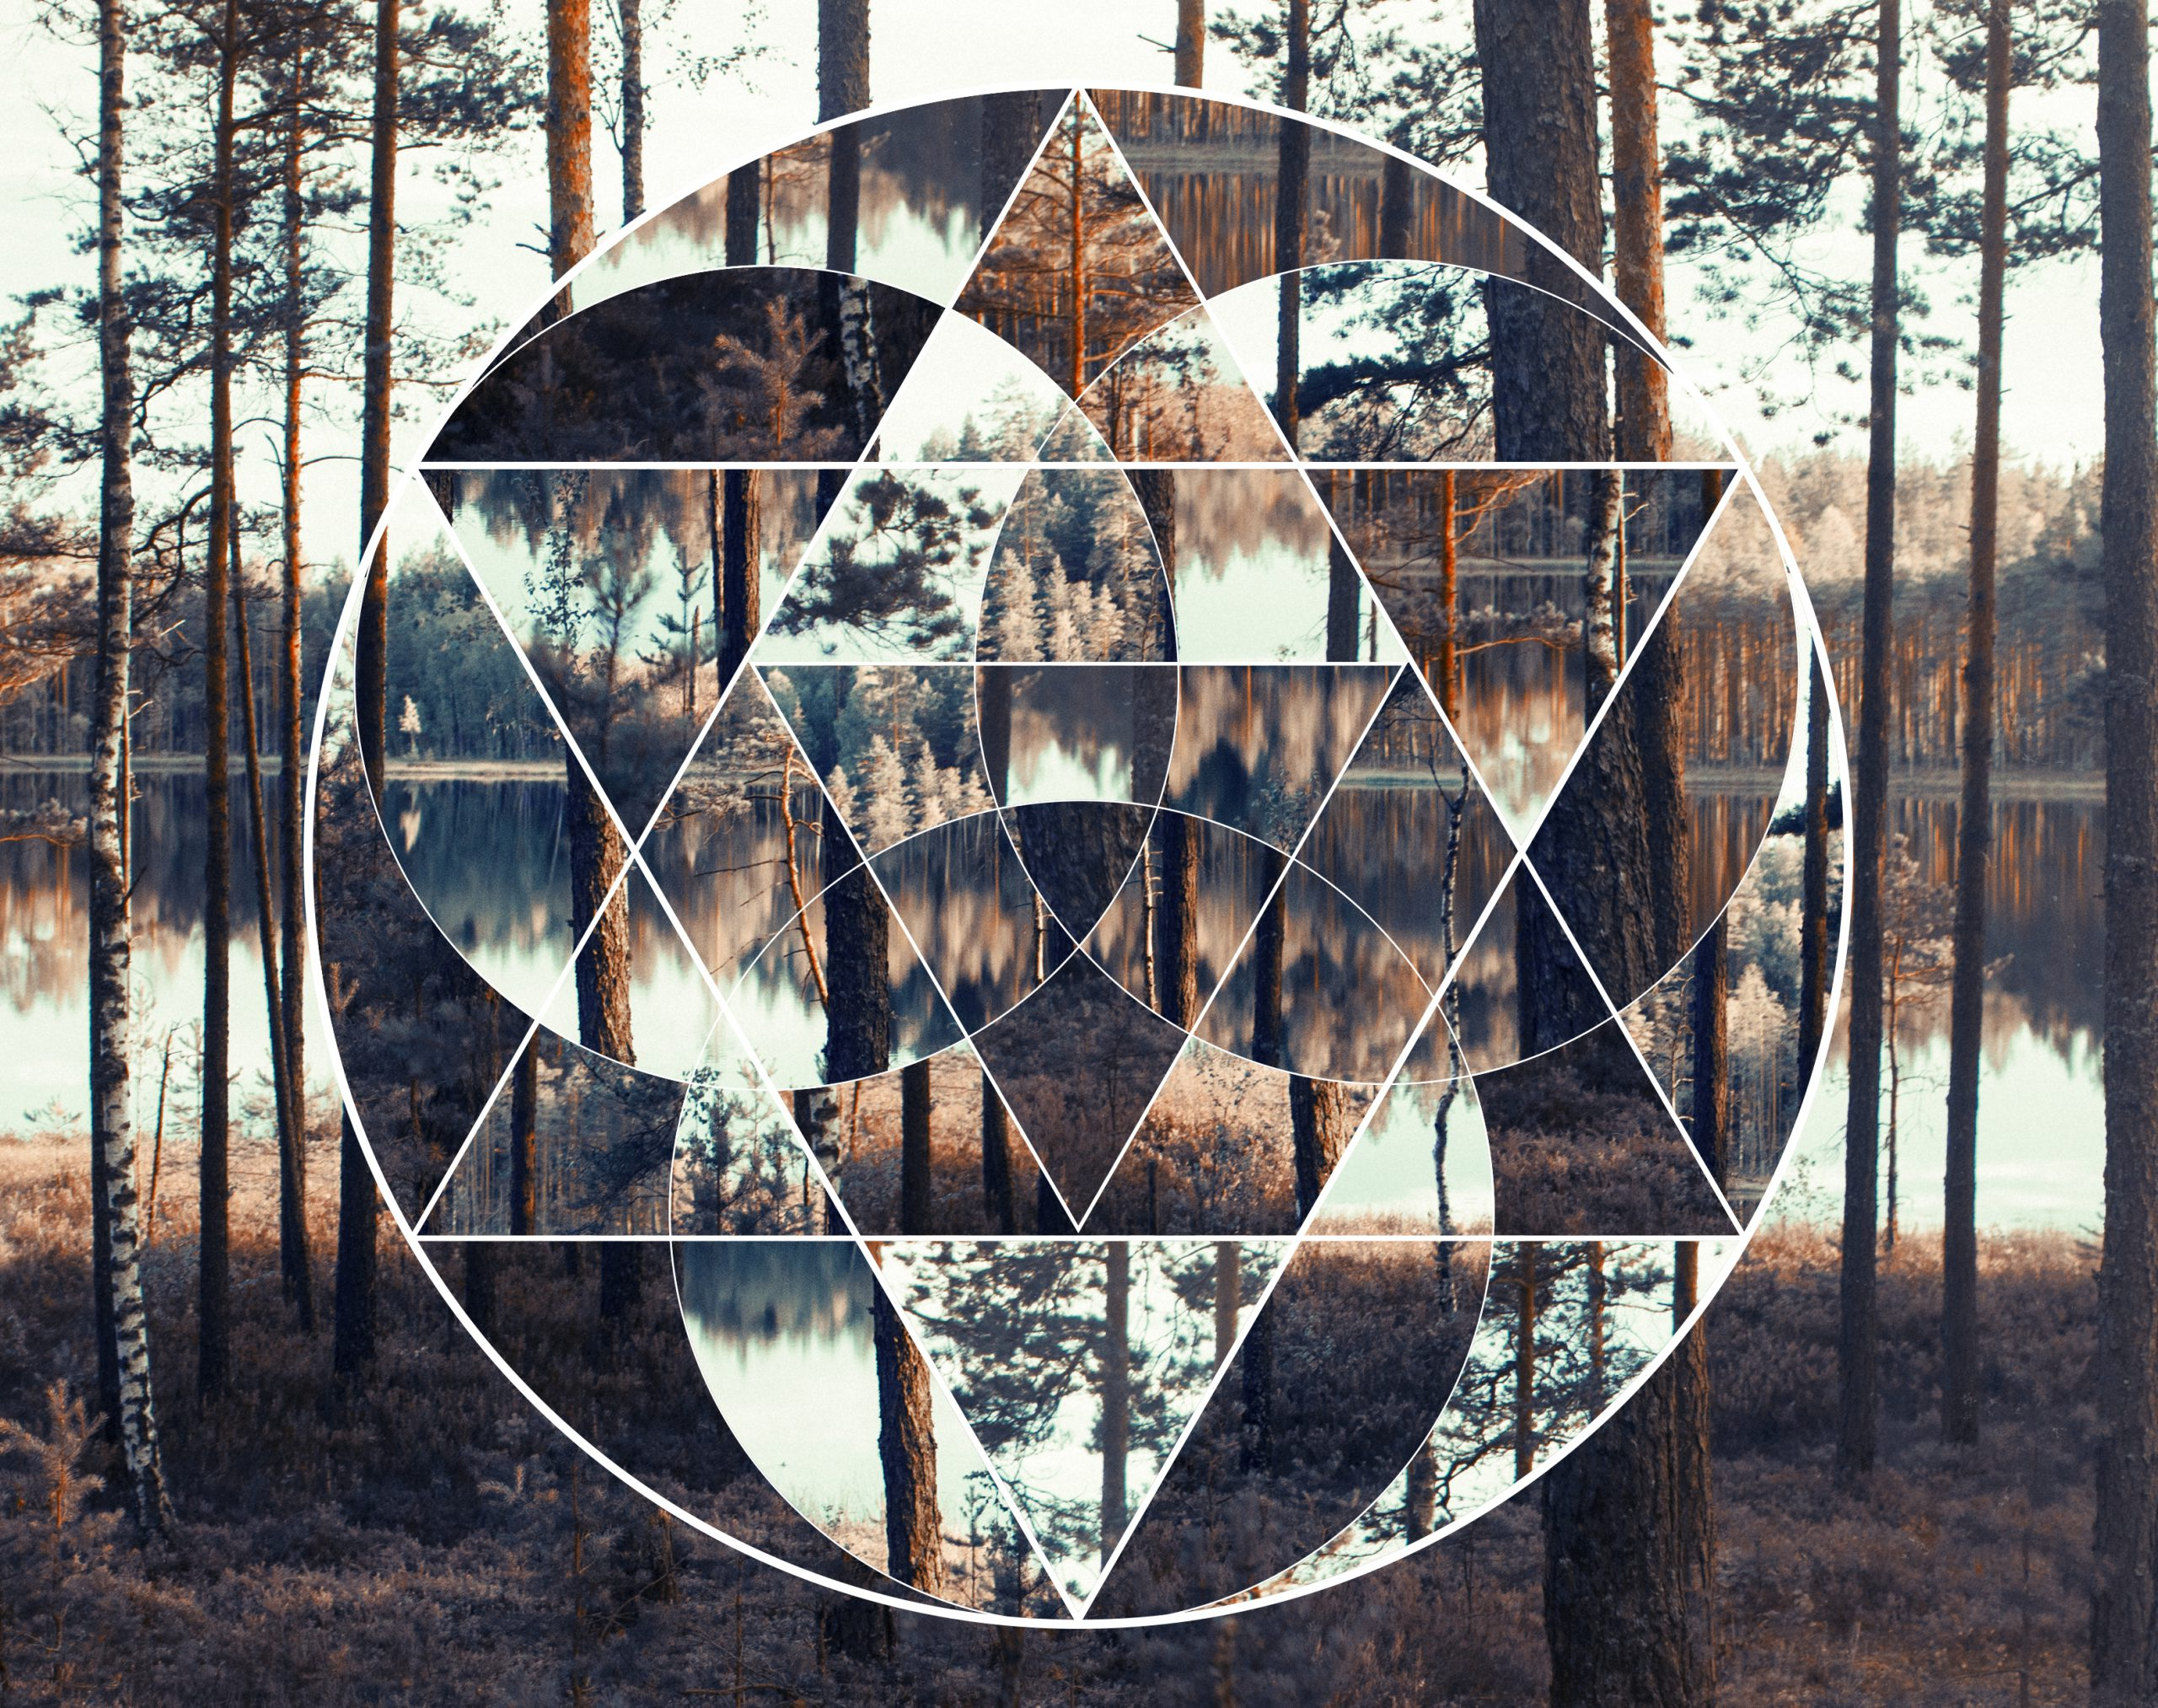 The Anchorite Rites Return | Alchemical Rituals and Global Transformation Through Social Distancing